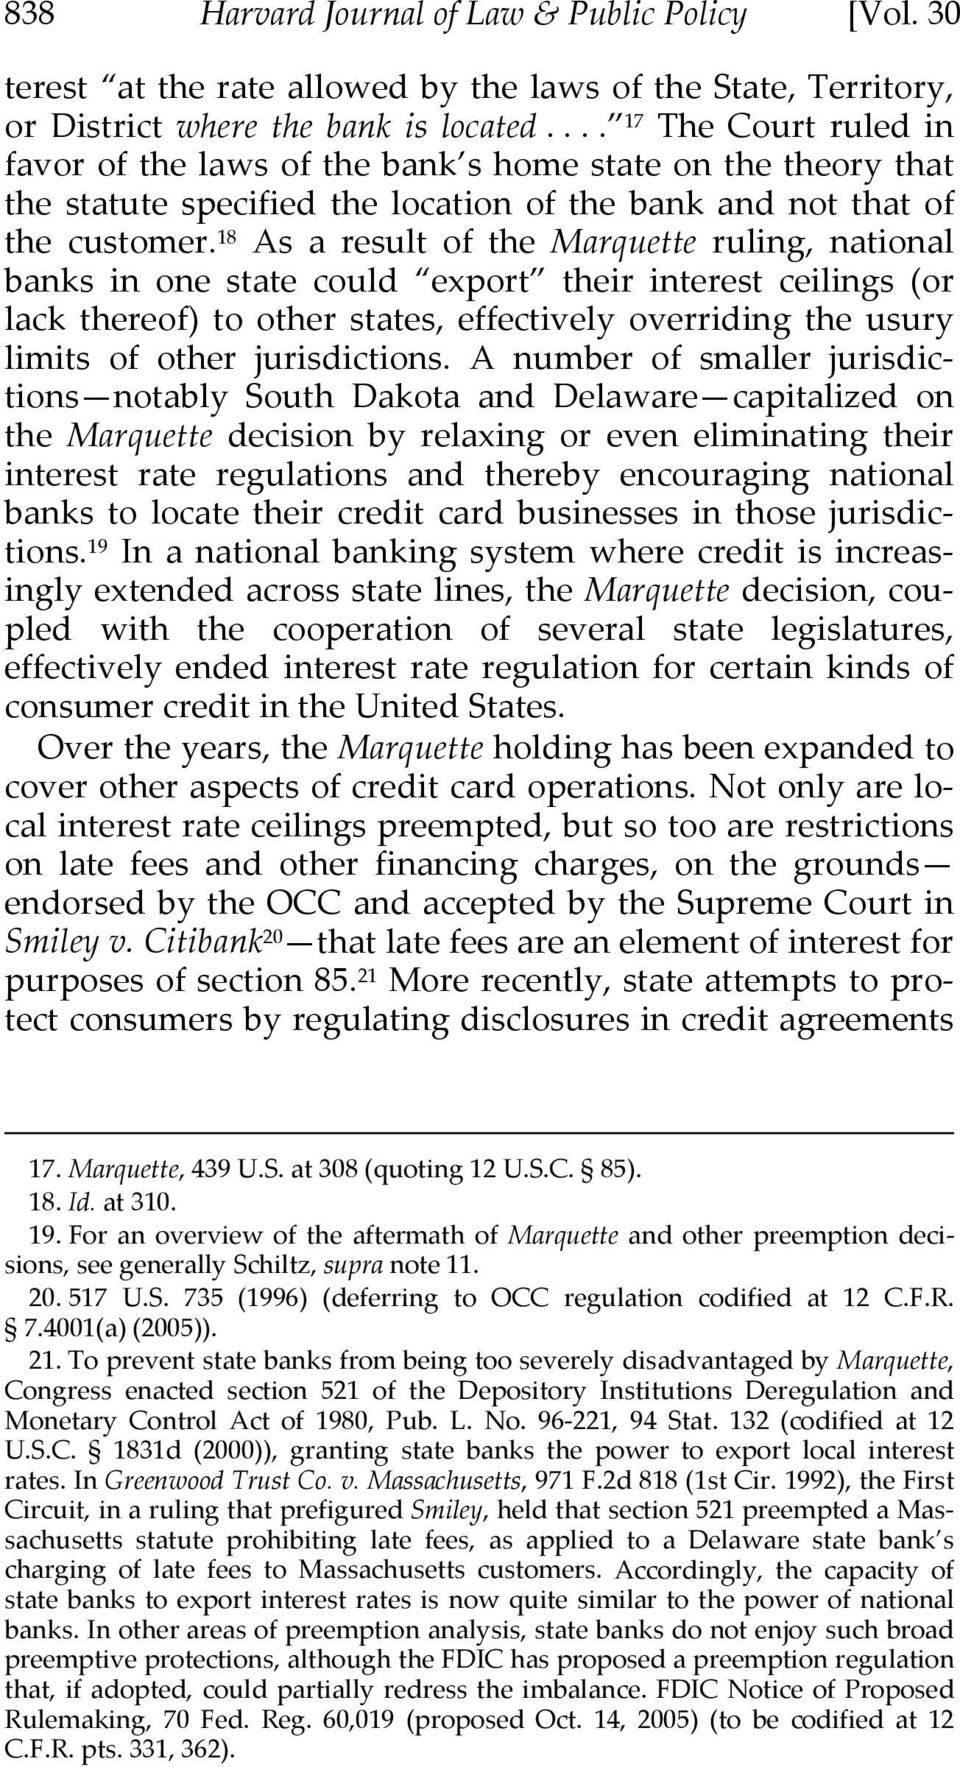 18 As a result of the Marquette ruling, national banks in one state could export their interest ceilings (or lack thereof) to other states, effectively overriding the usury limits of other